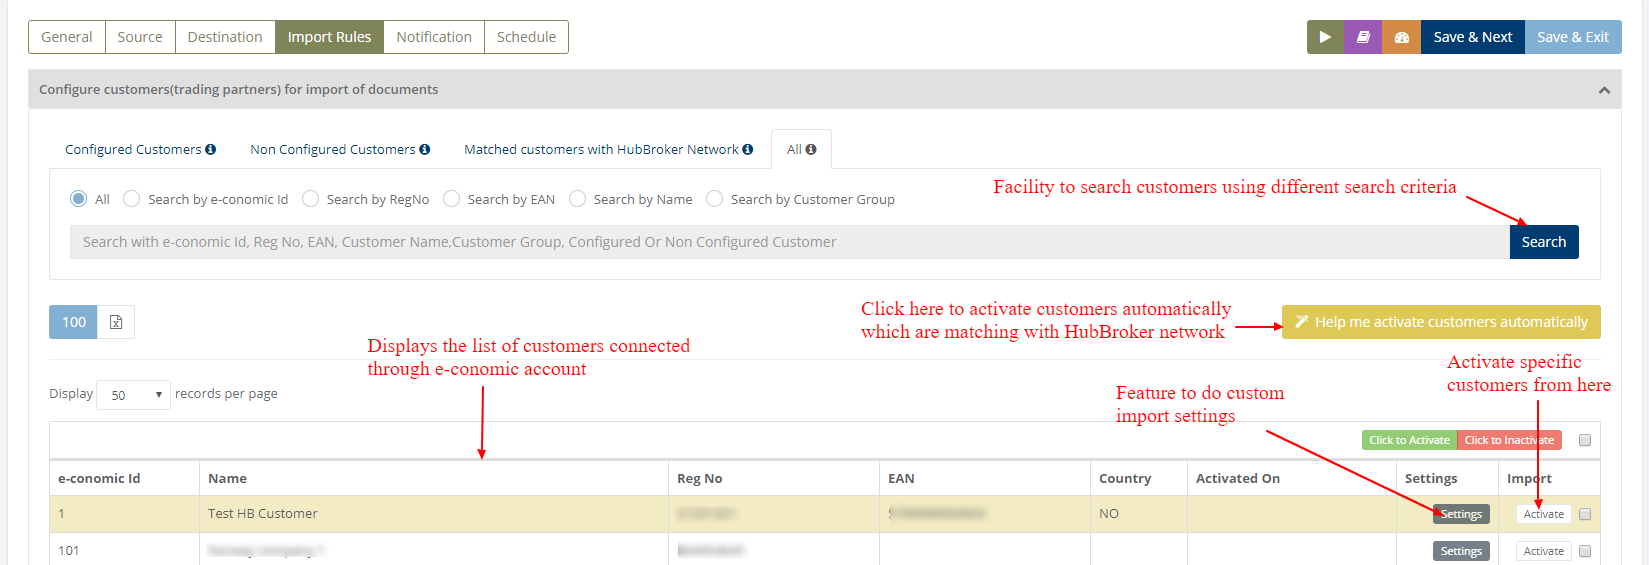 Import Rules - Activation of customers